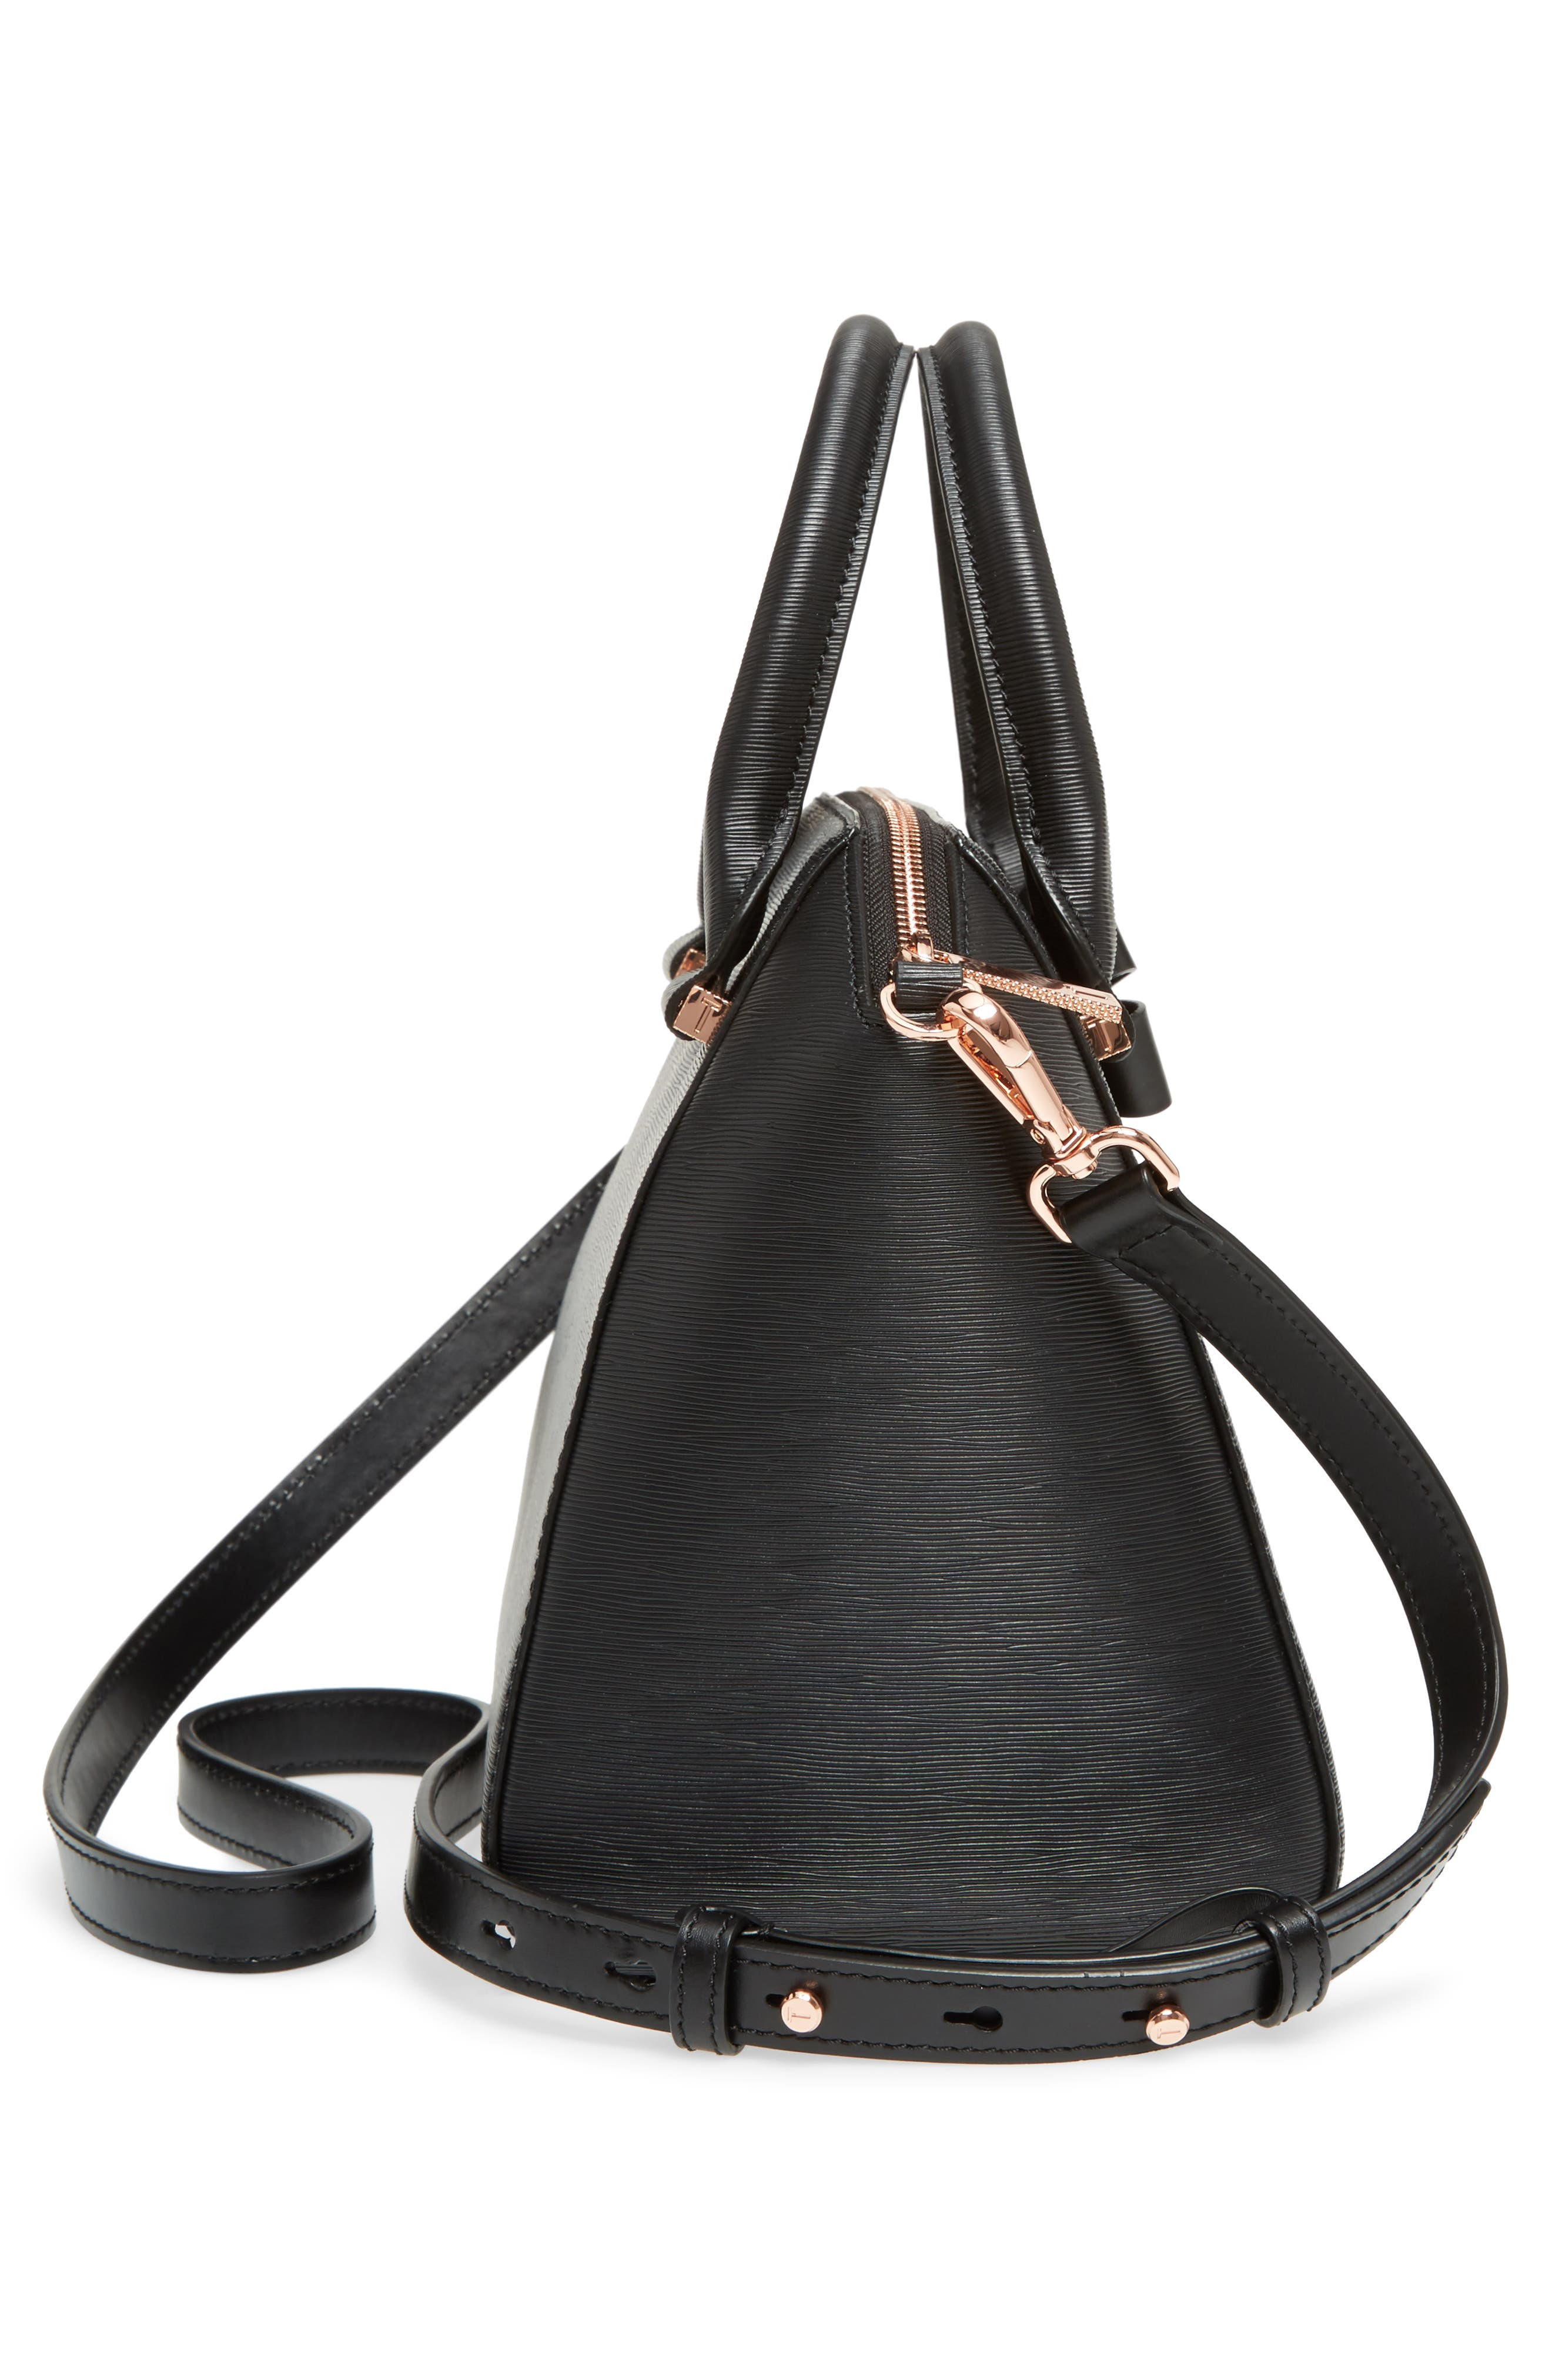 Charmea Bow Small Leather Tote,                             Alternate thumbnail 5, color,                             Black